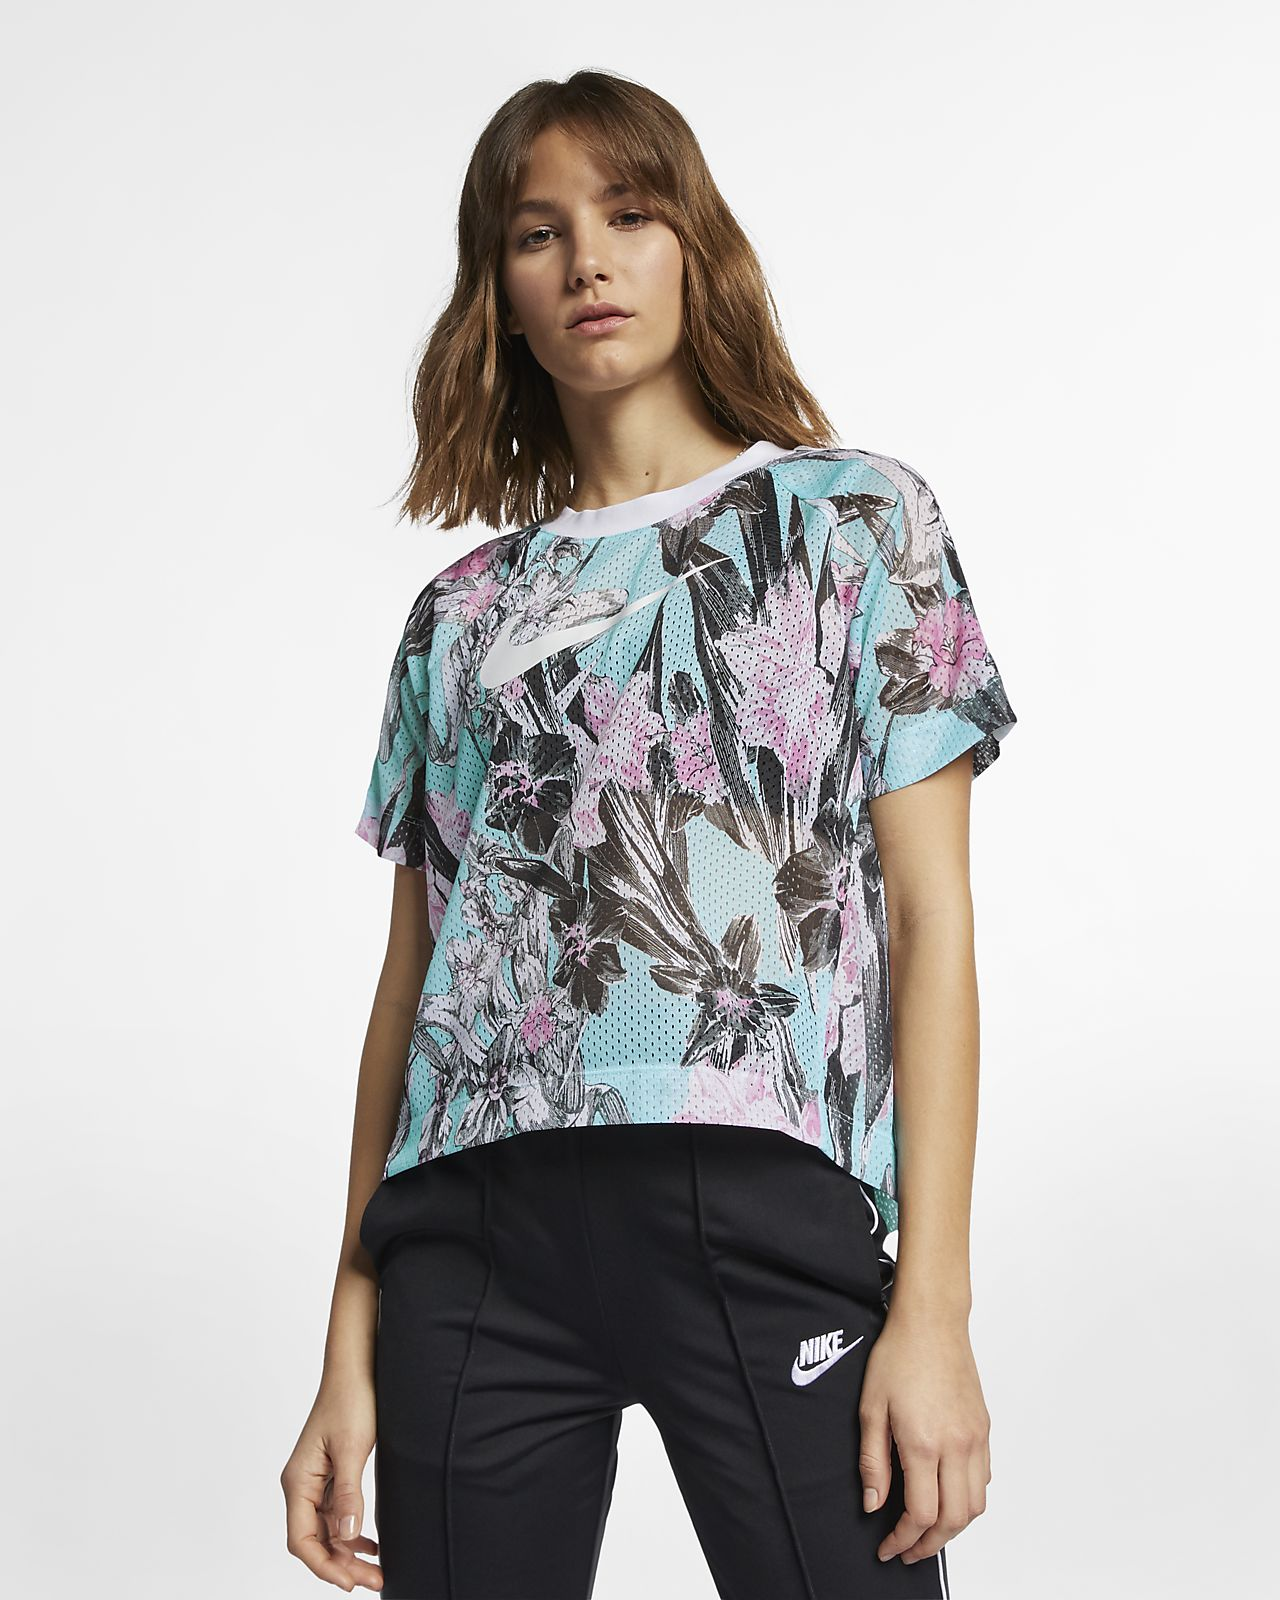 Nike Sportswear Women's Short-Sleeve Floral Top